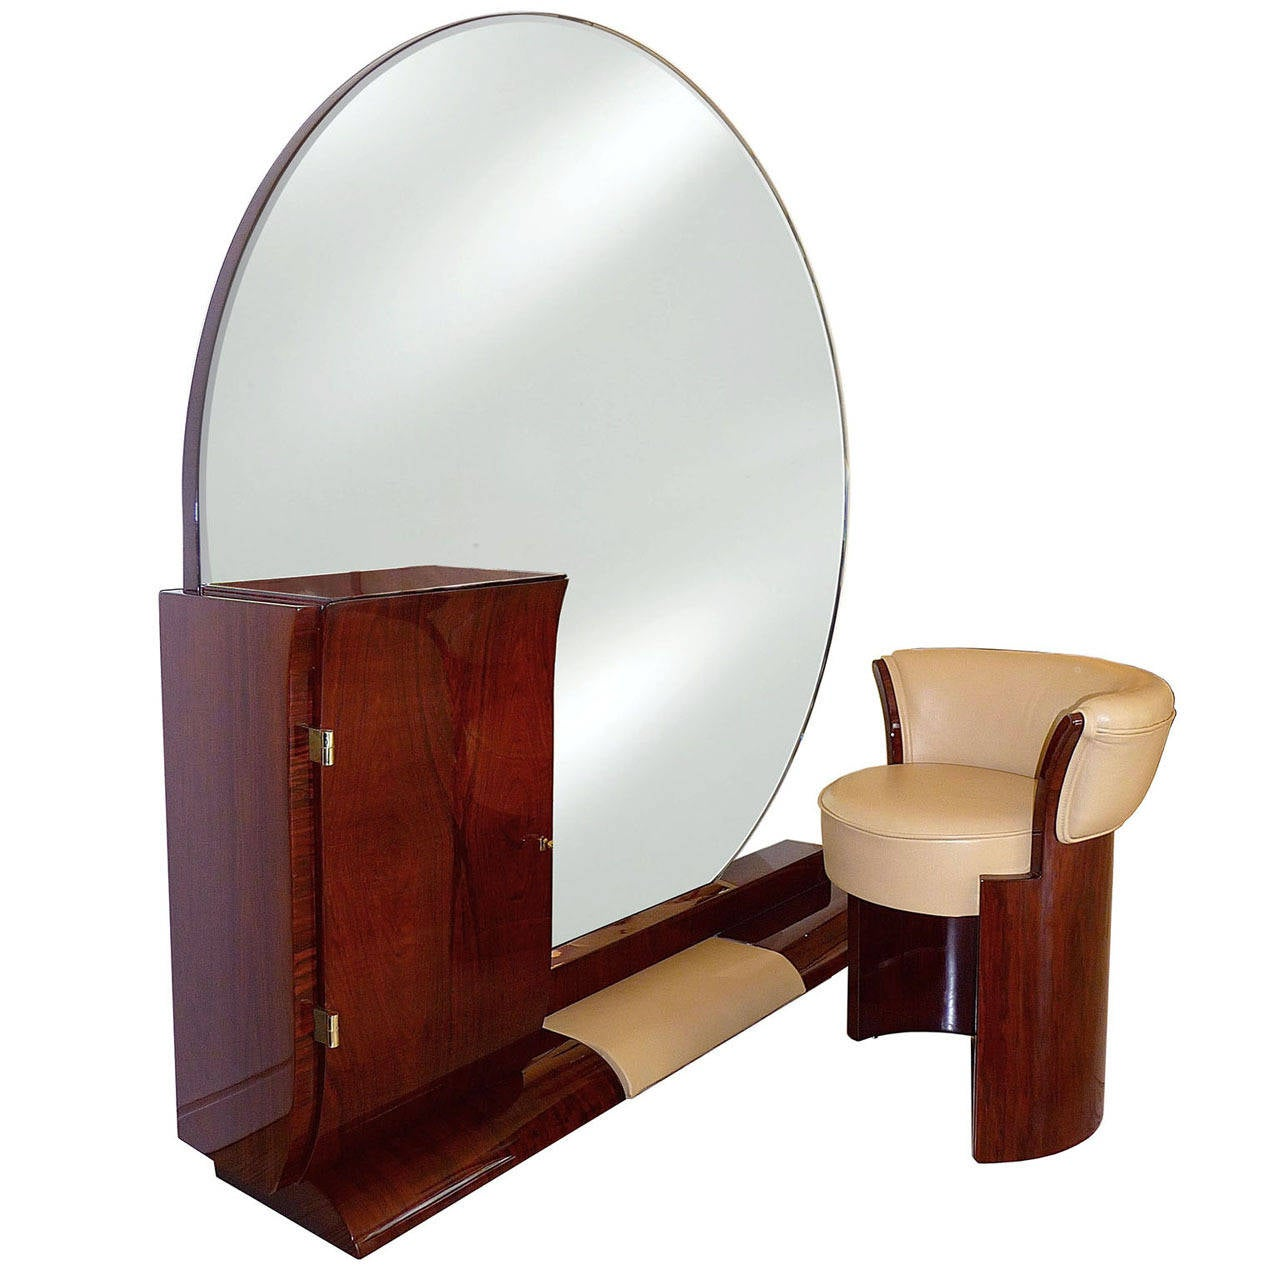 art deco coiffeuse with tabouret by jean pascaud at 1stdibs. Black Bedroom Furniture Sets. Home Design Ideas